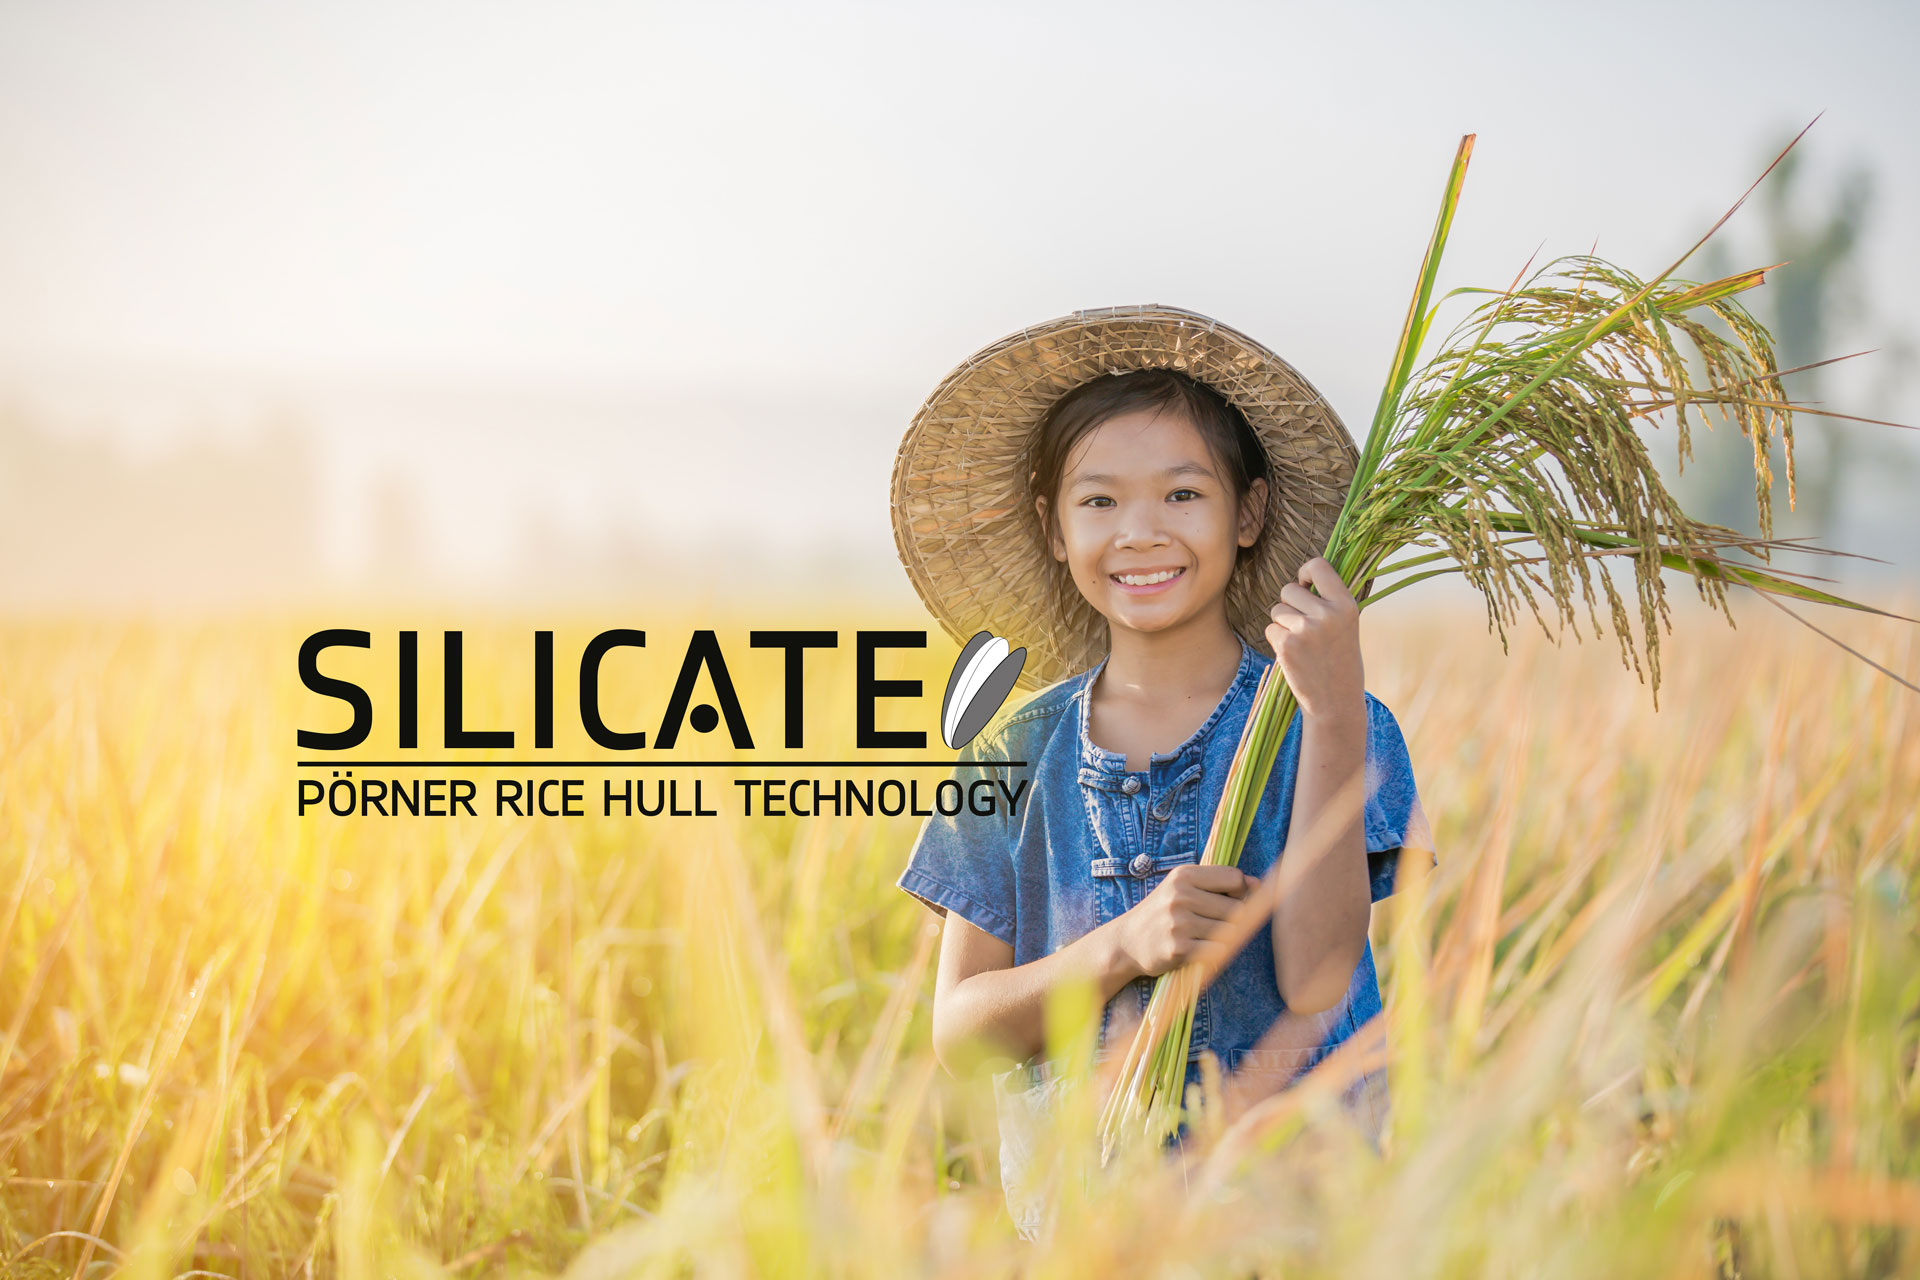 Girl in rice field